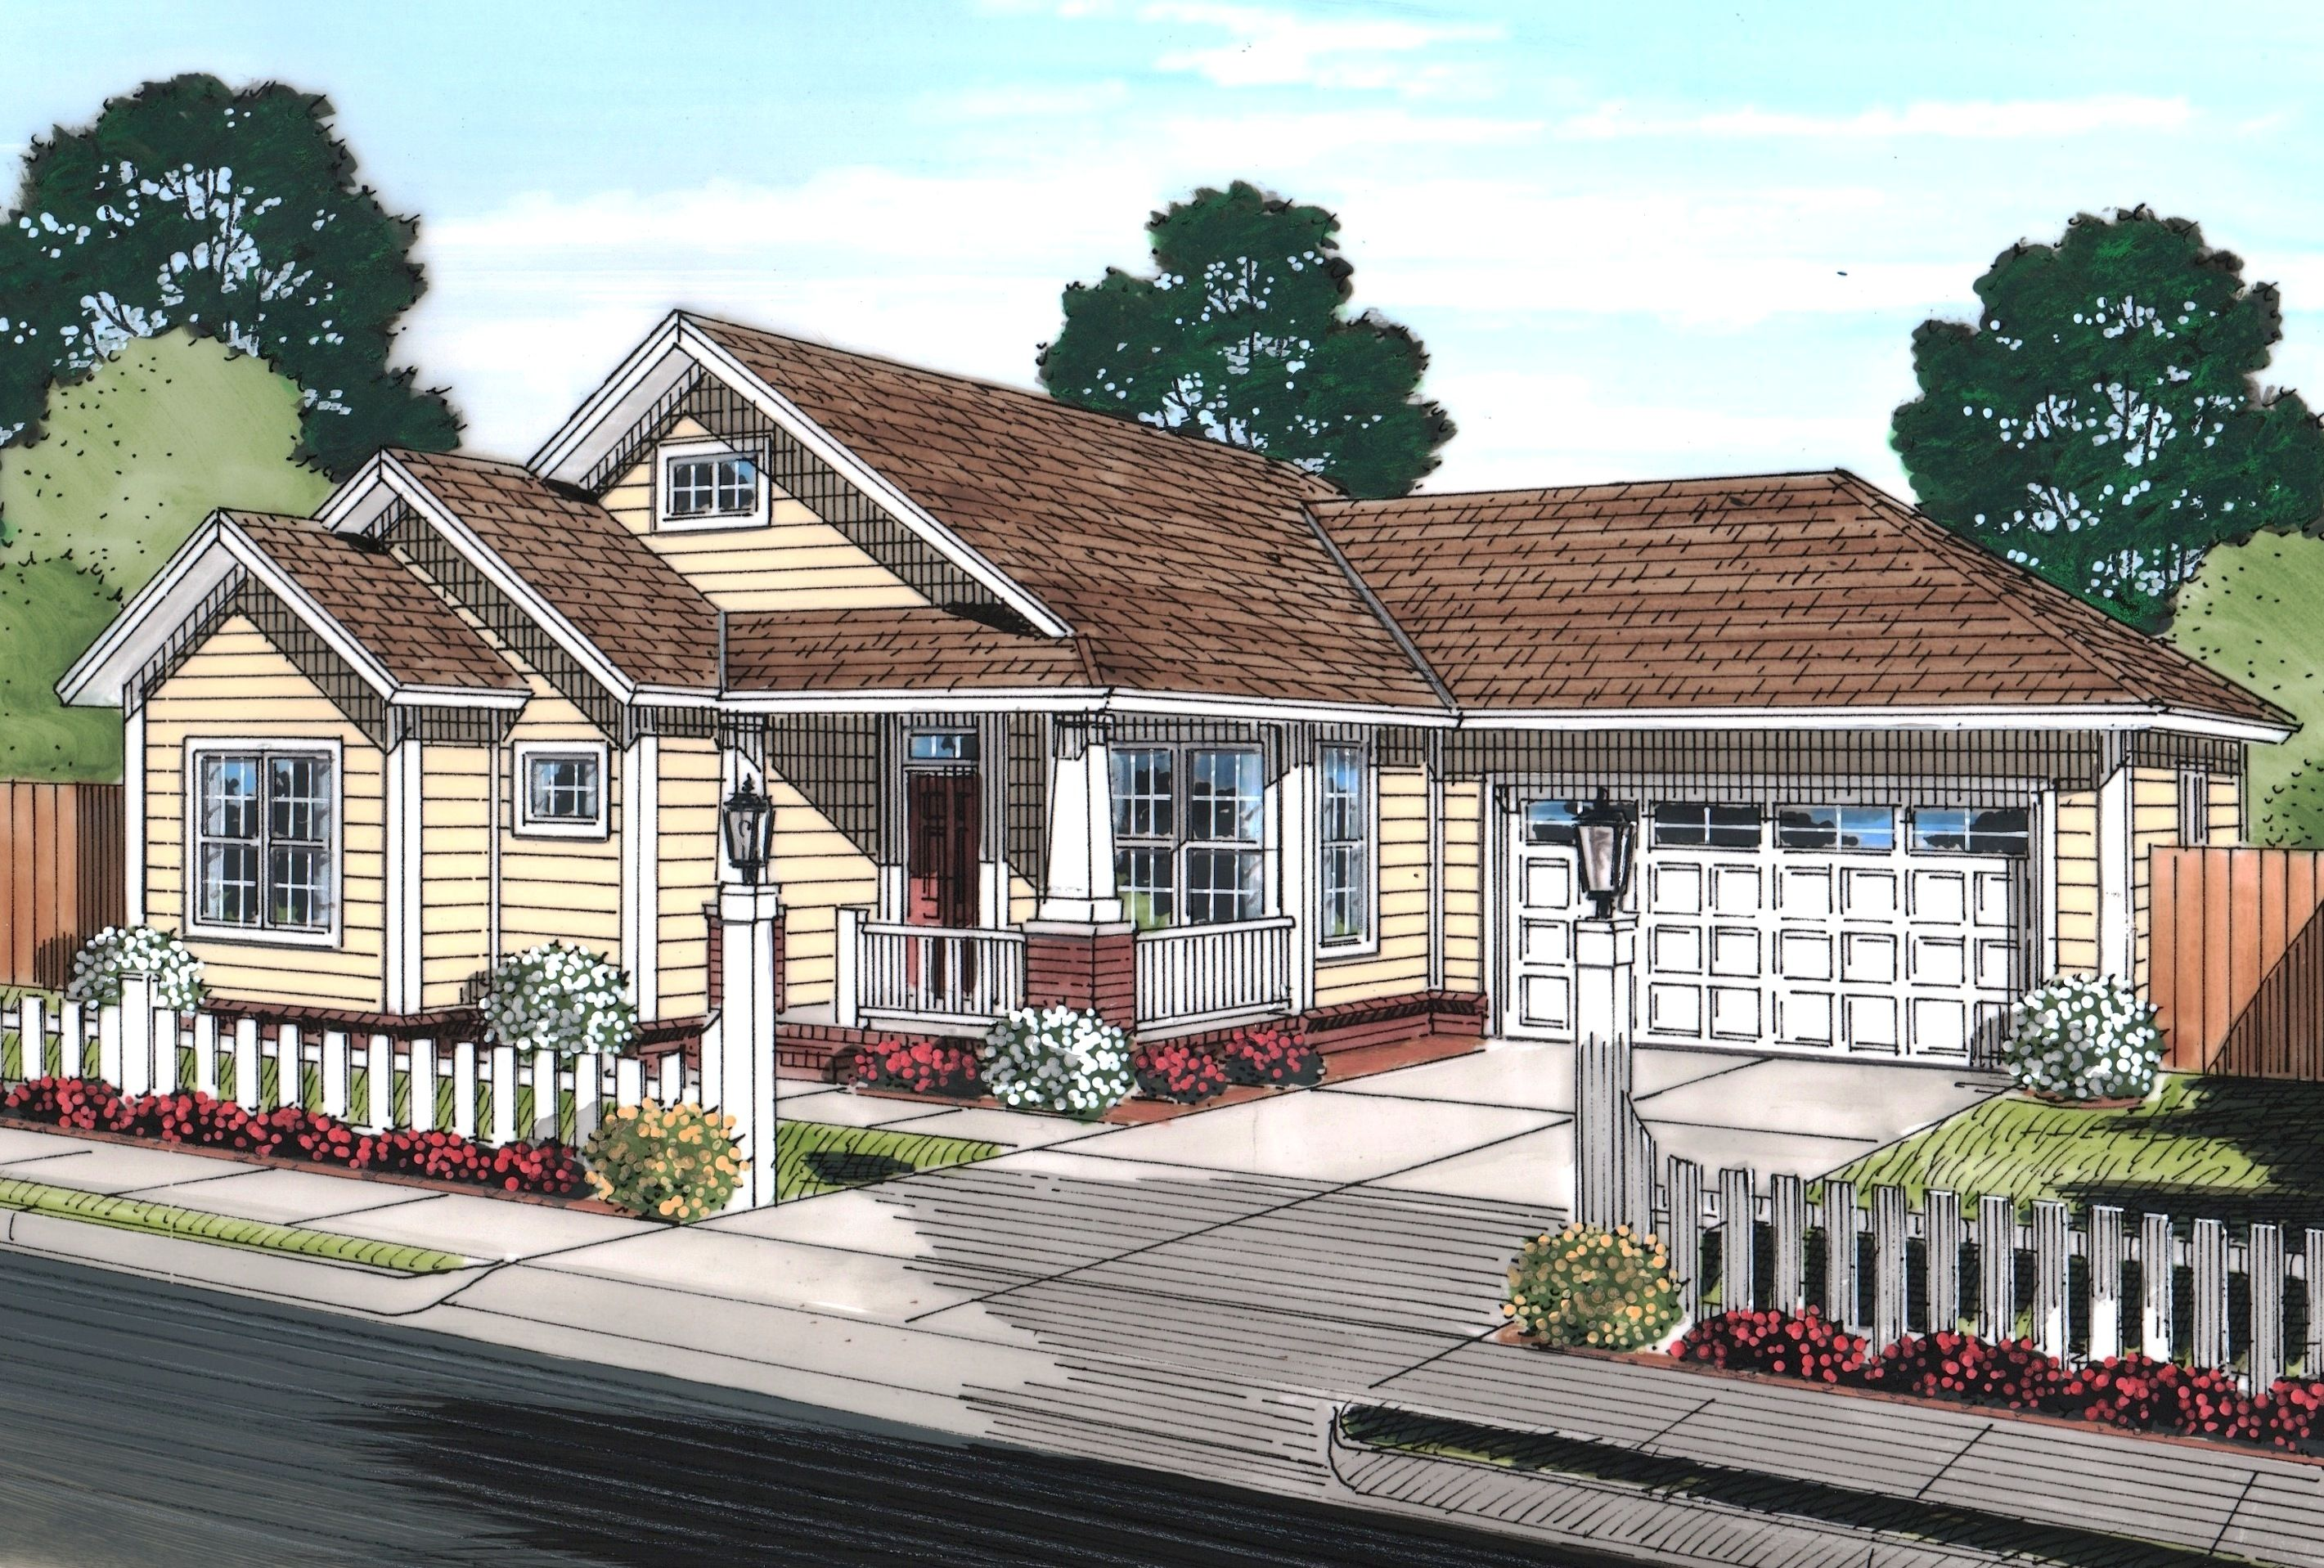 Plan 52230wm Cozy Cottage In 2021 Cottage Style House Plans Cottage House Plans Craftsman Style House Plans